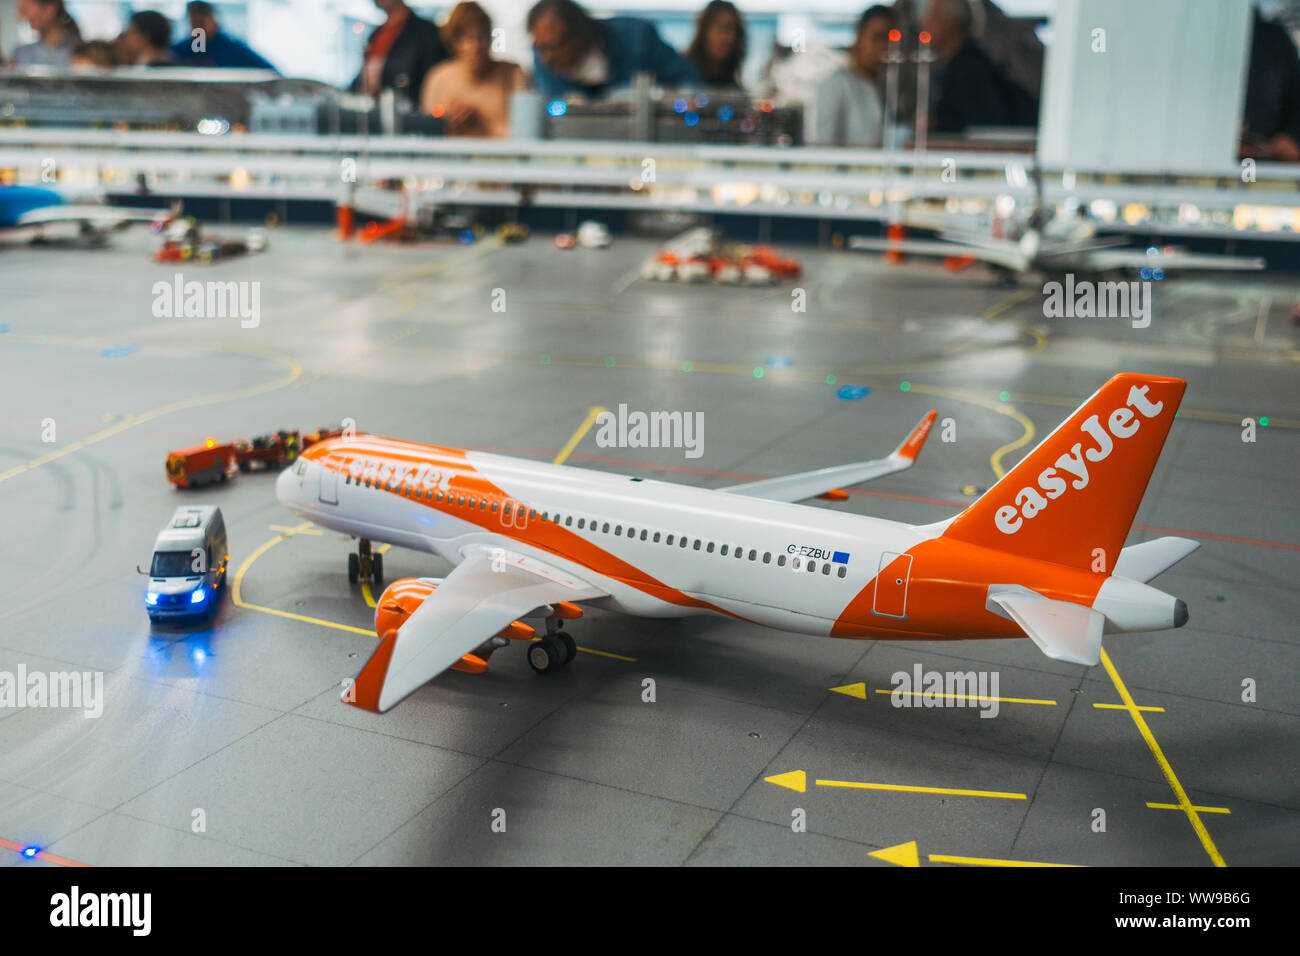 a scale model easyJet Airbus A320 sits parked on the tarmac at the famous Knuffingen Airport at Miniatur Wunderland in Hamburg Stock Photo